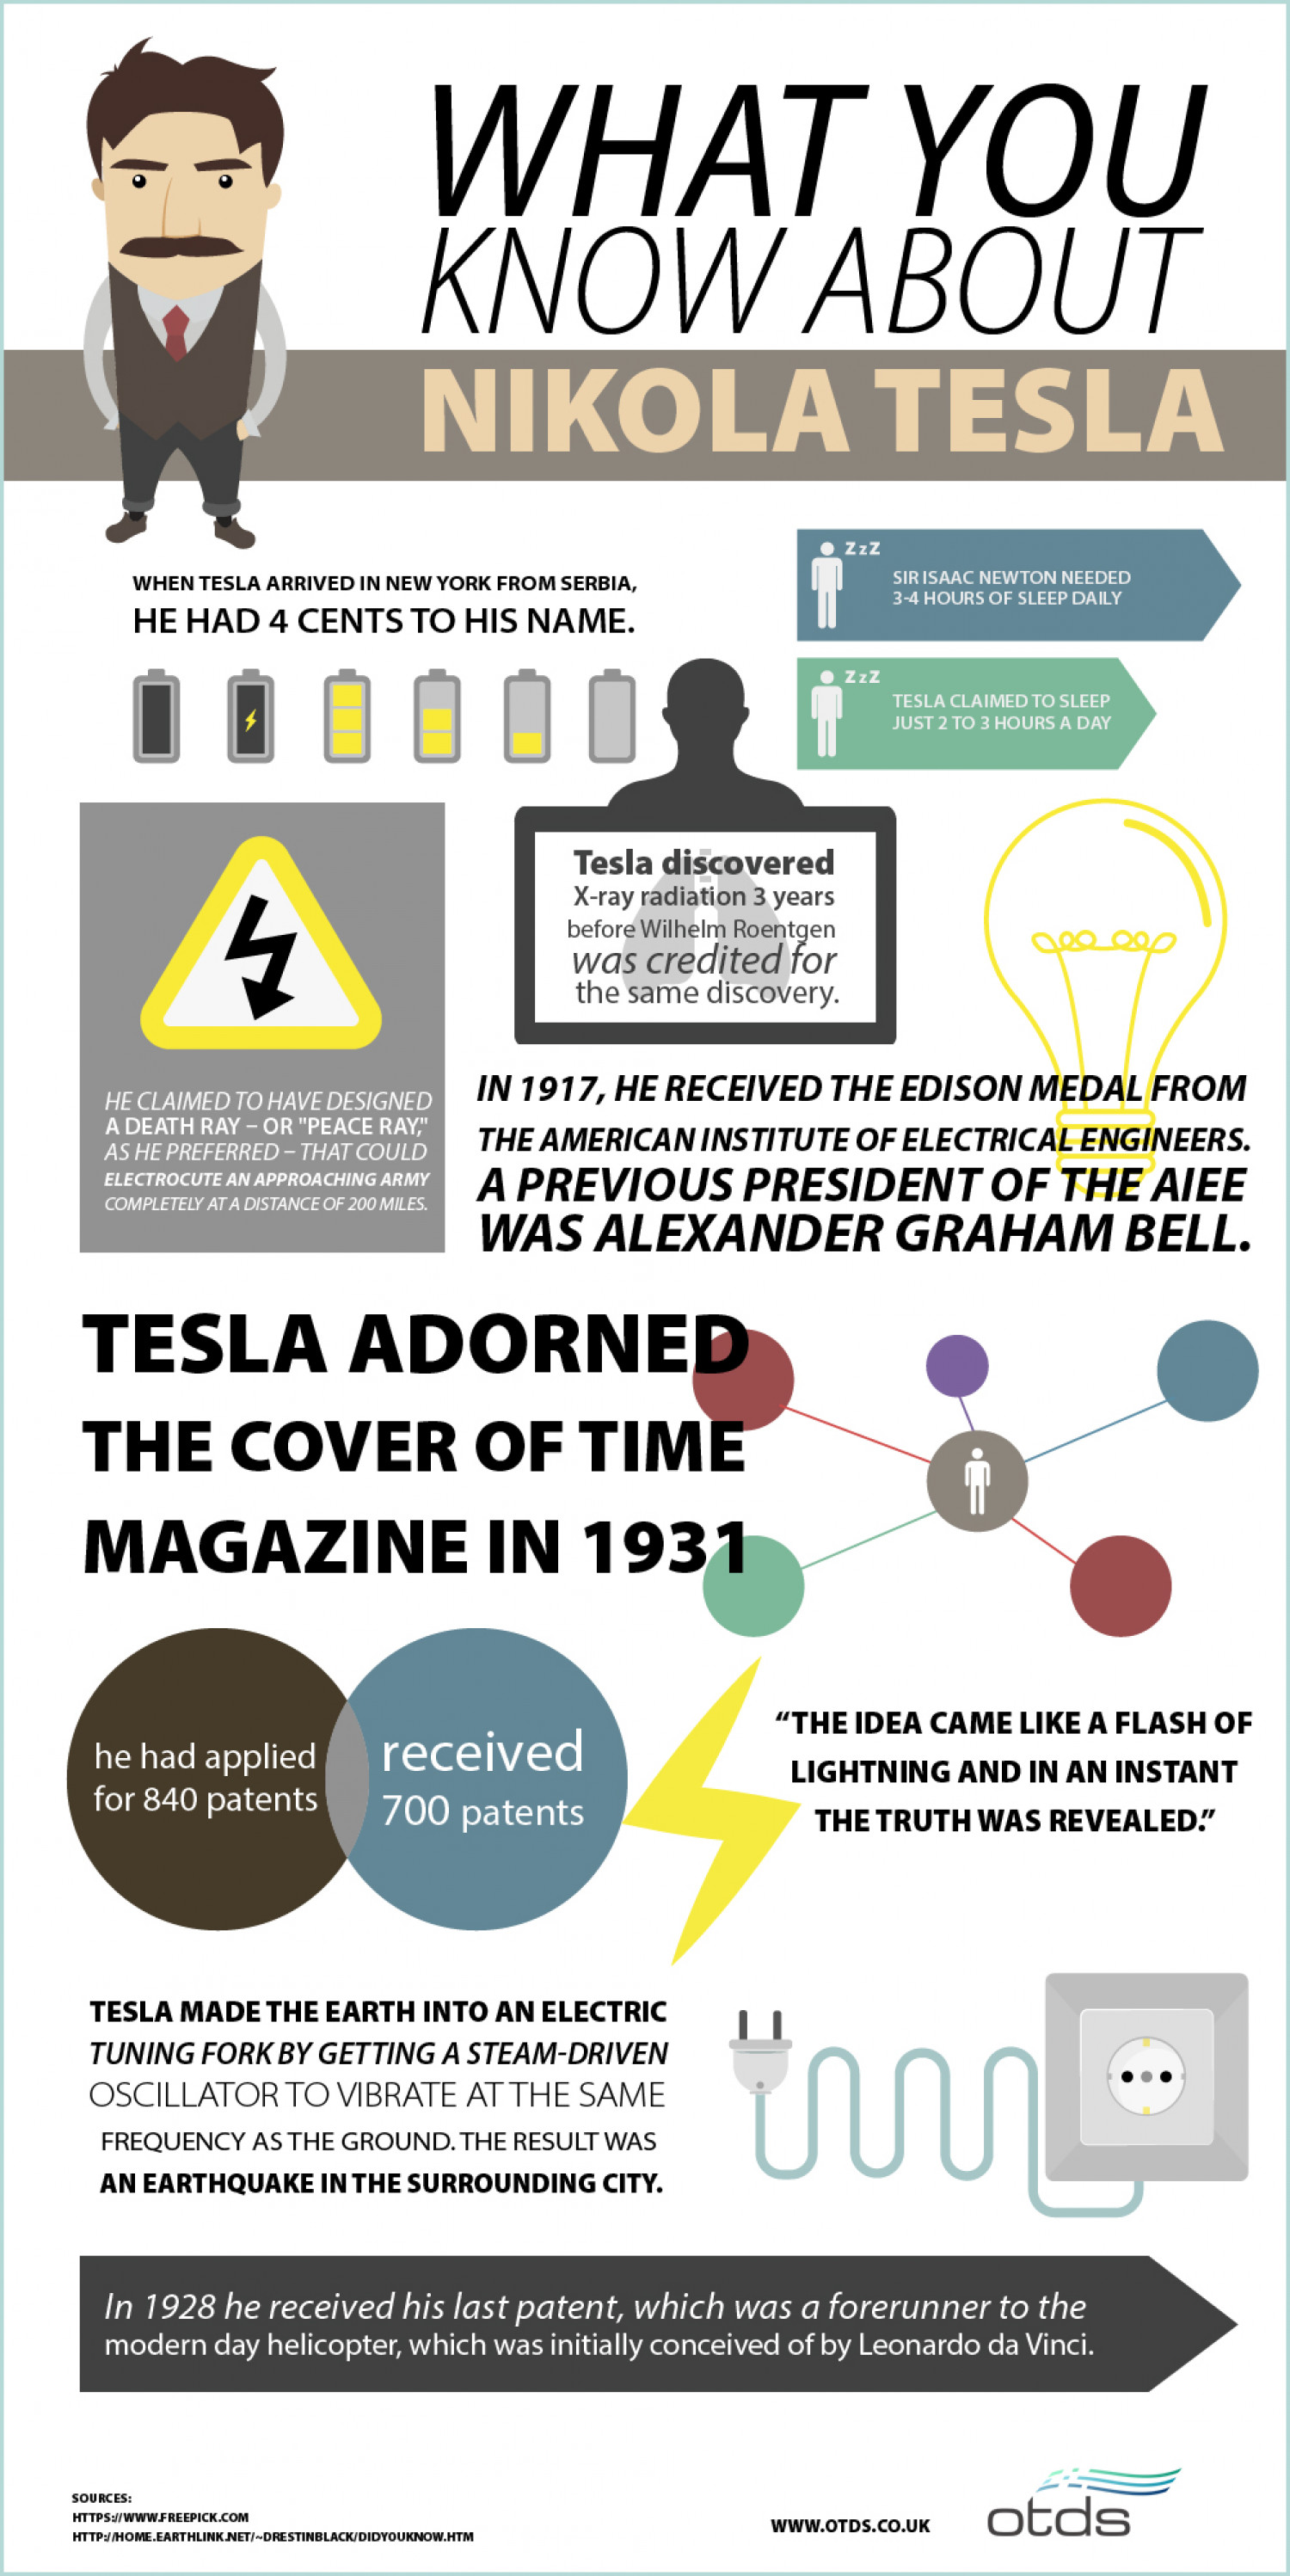 What Do You Know About Nicola Tesla Infographic